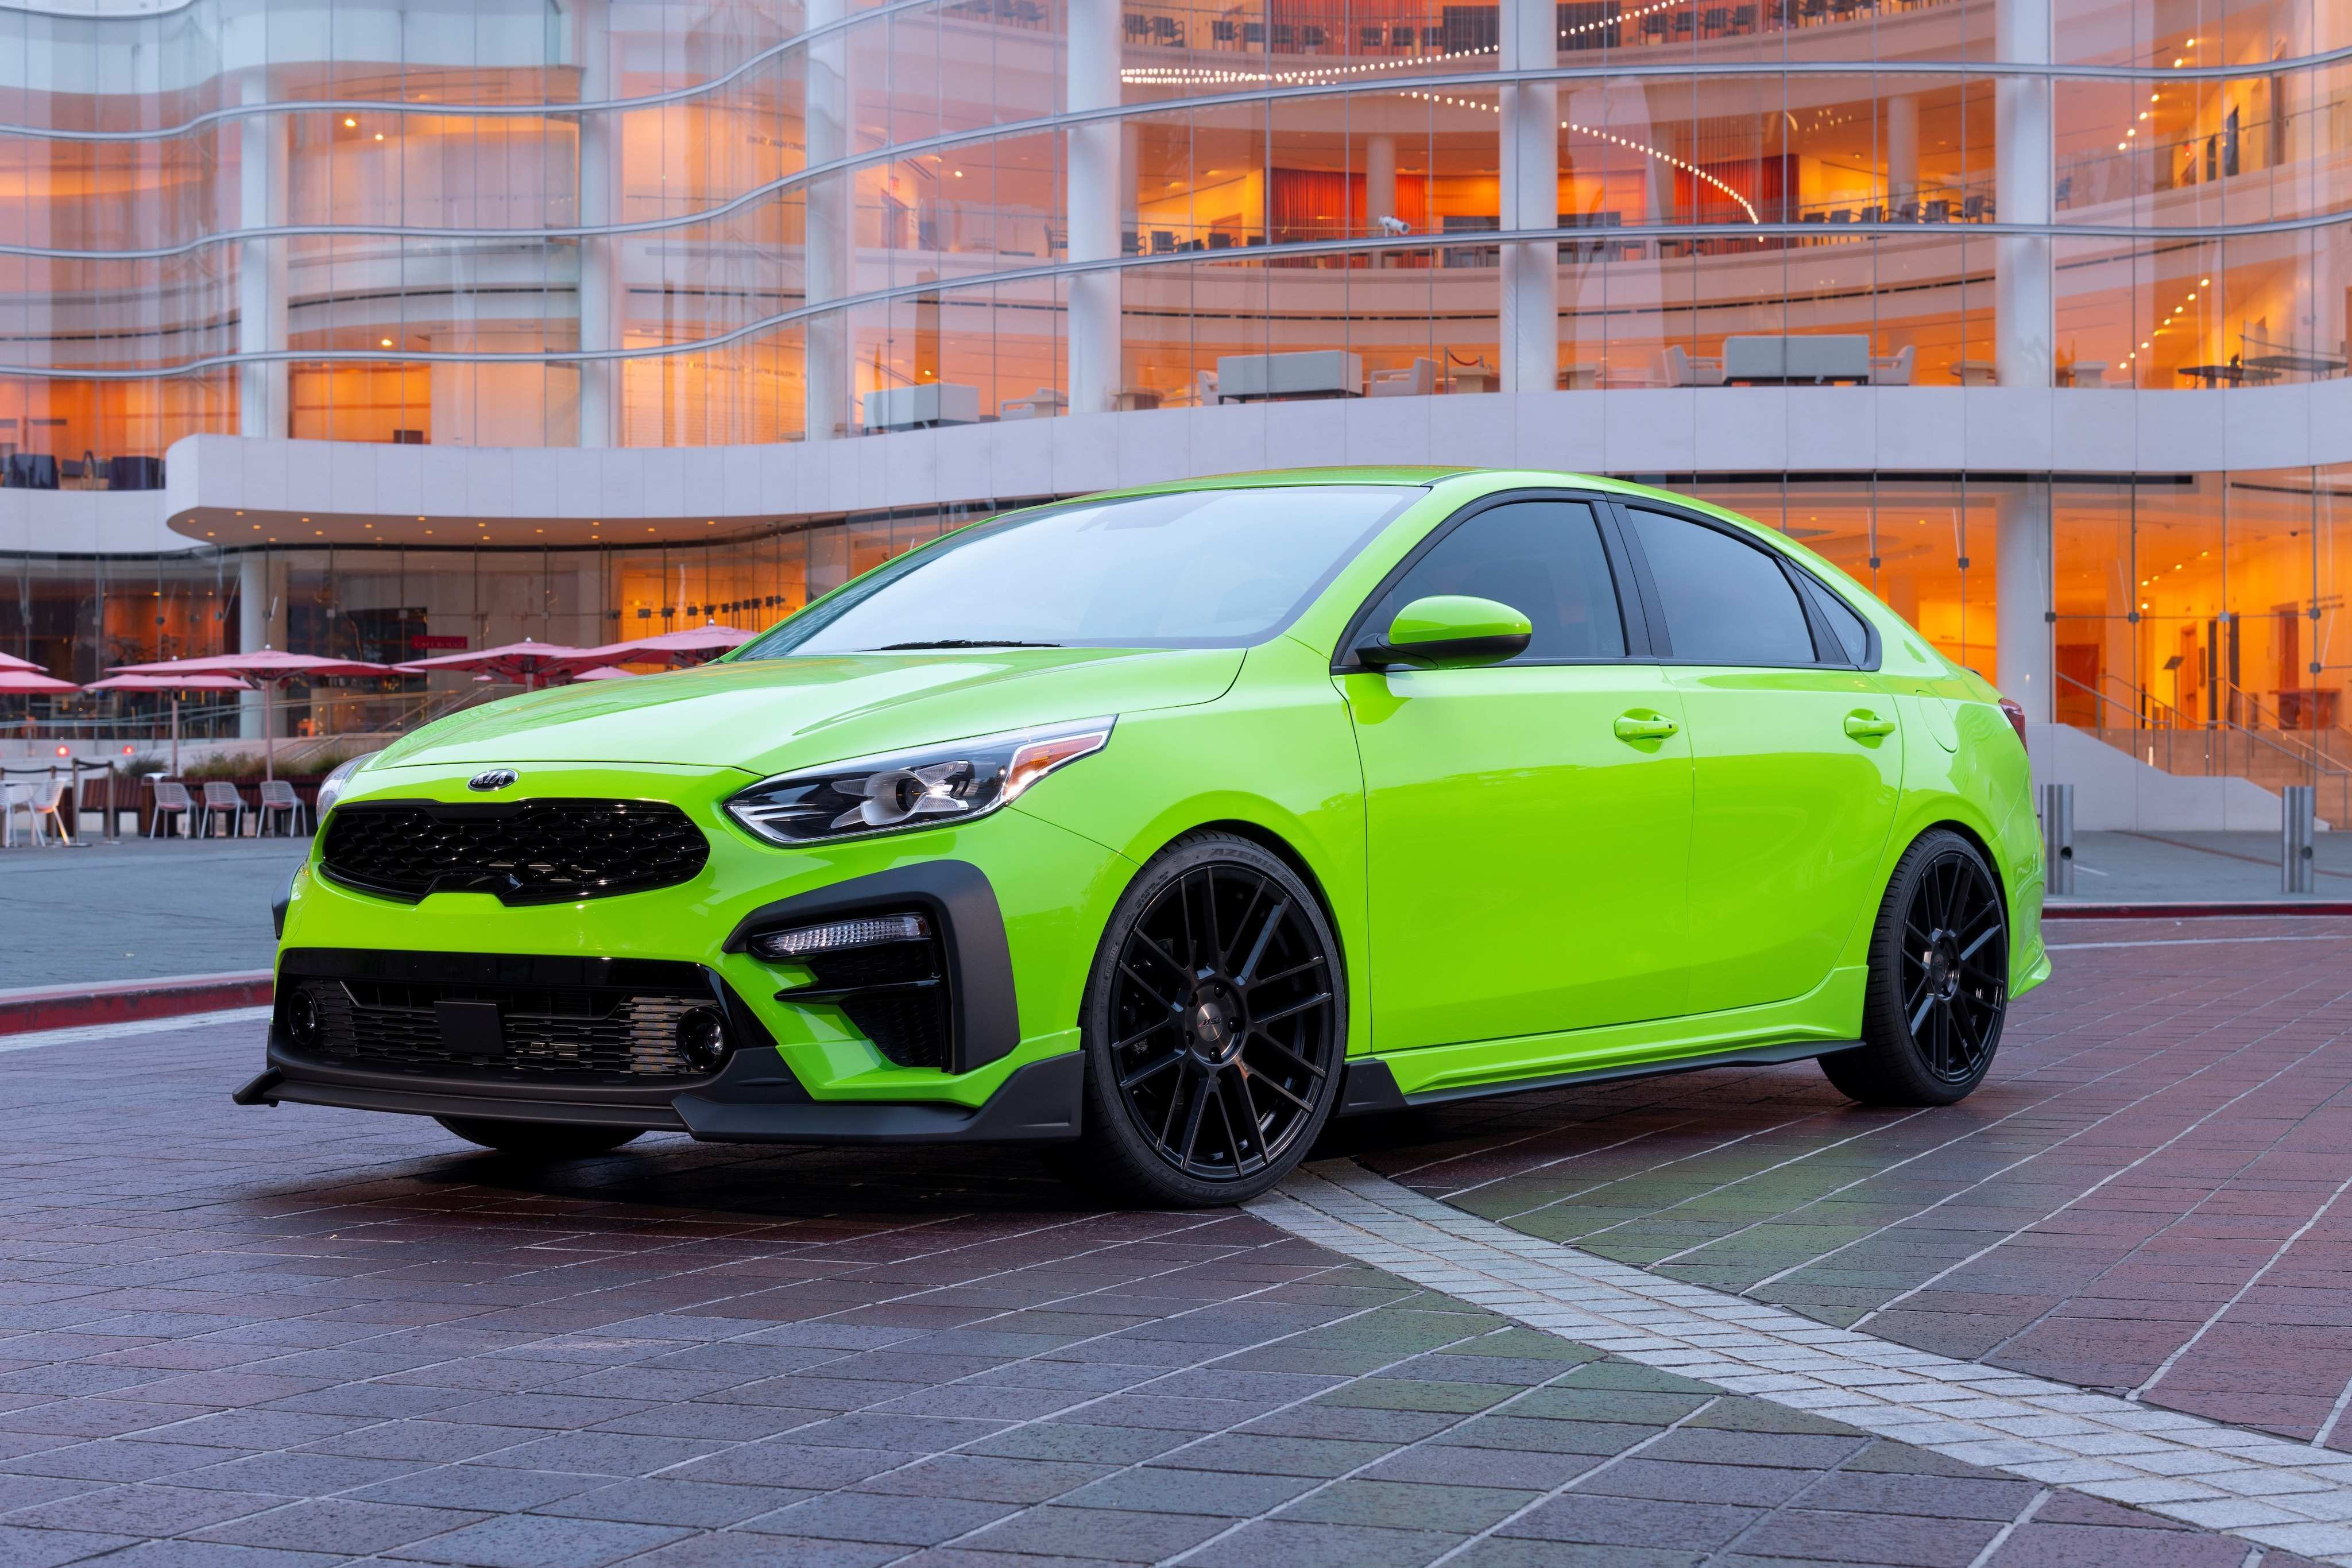 23 All New Kia Gt 2020 Price Design and Review